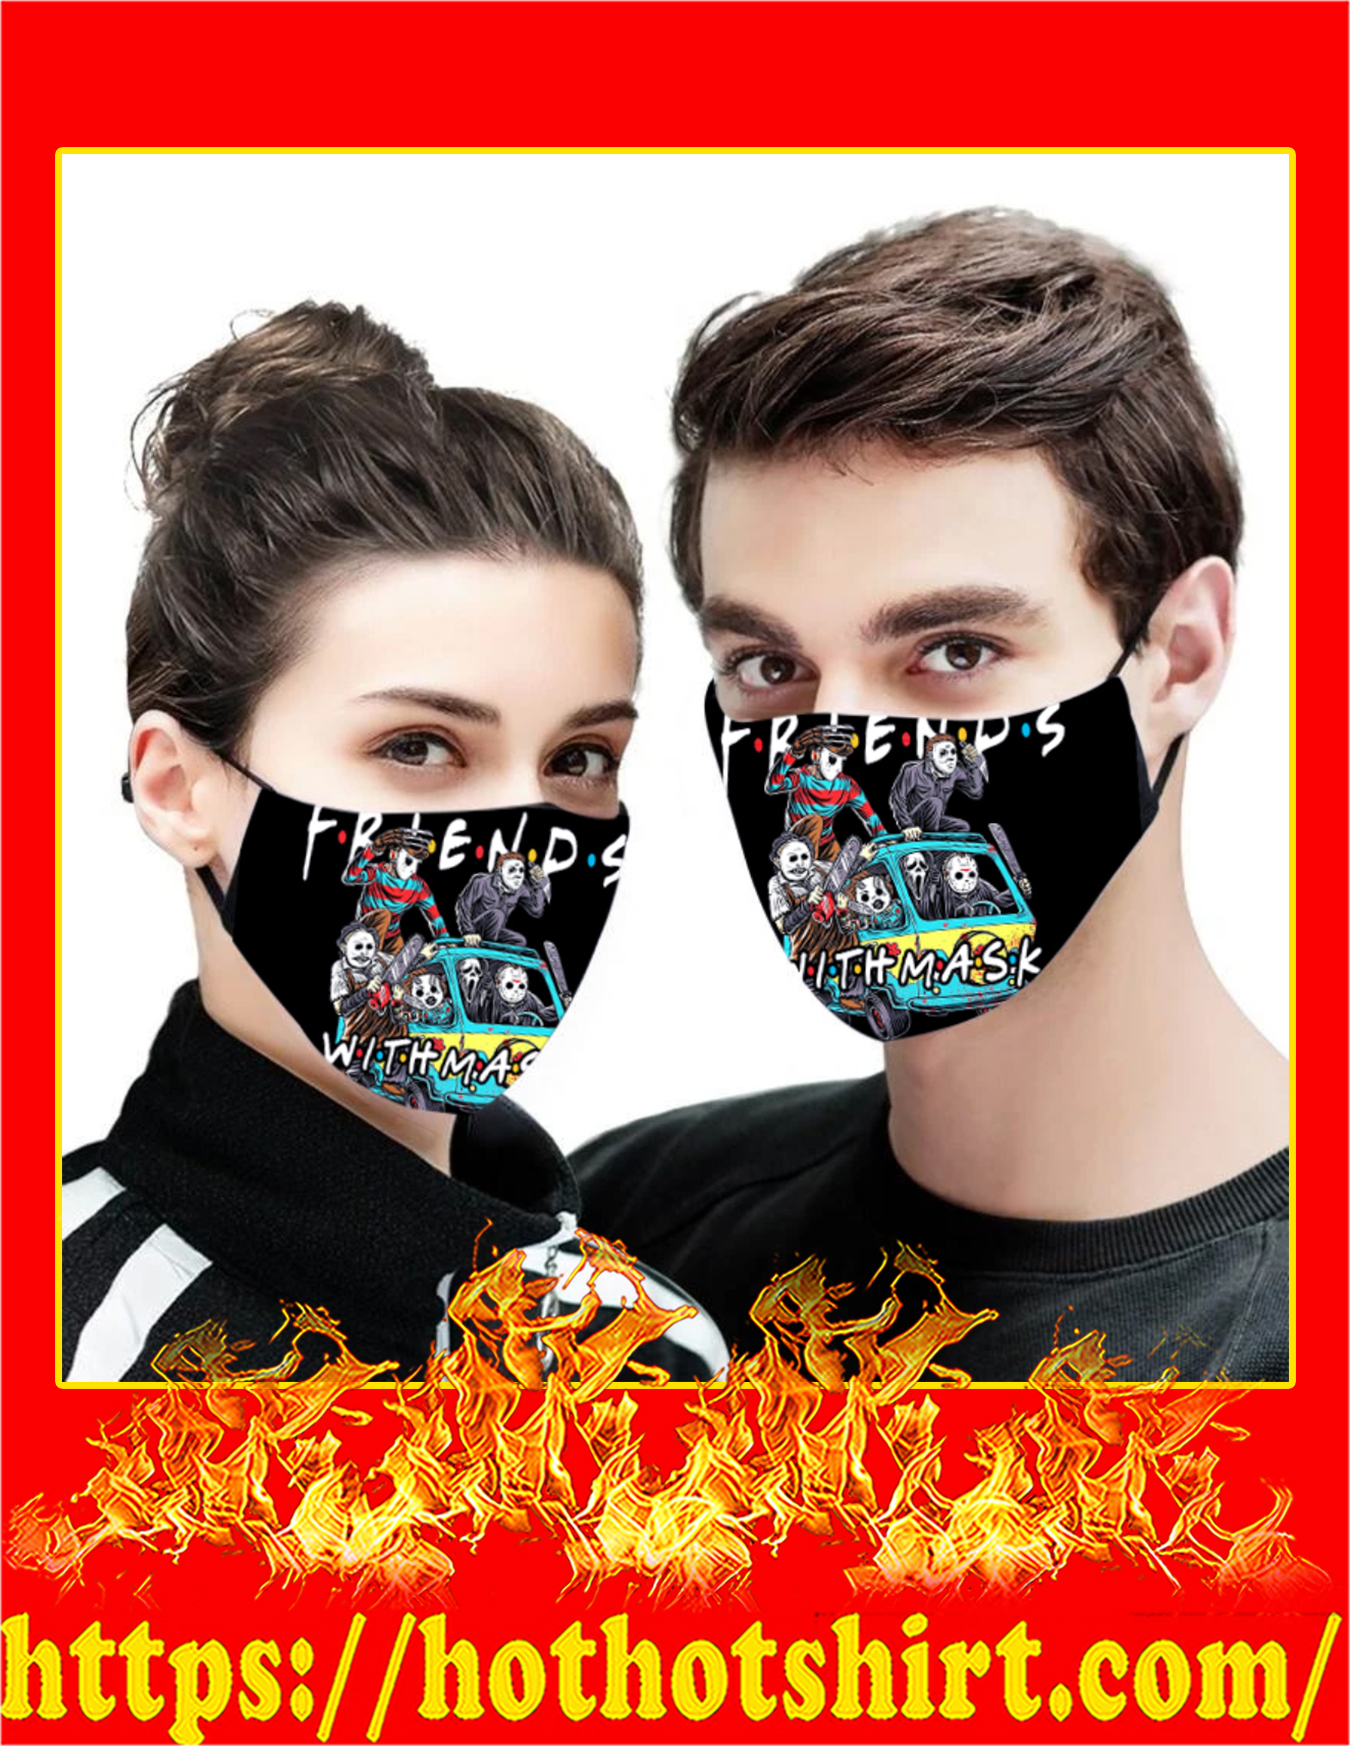 Horror killers friends with mask 3d face mask - detail